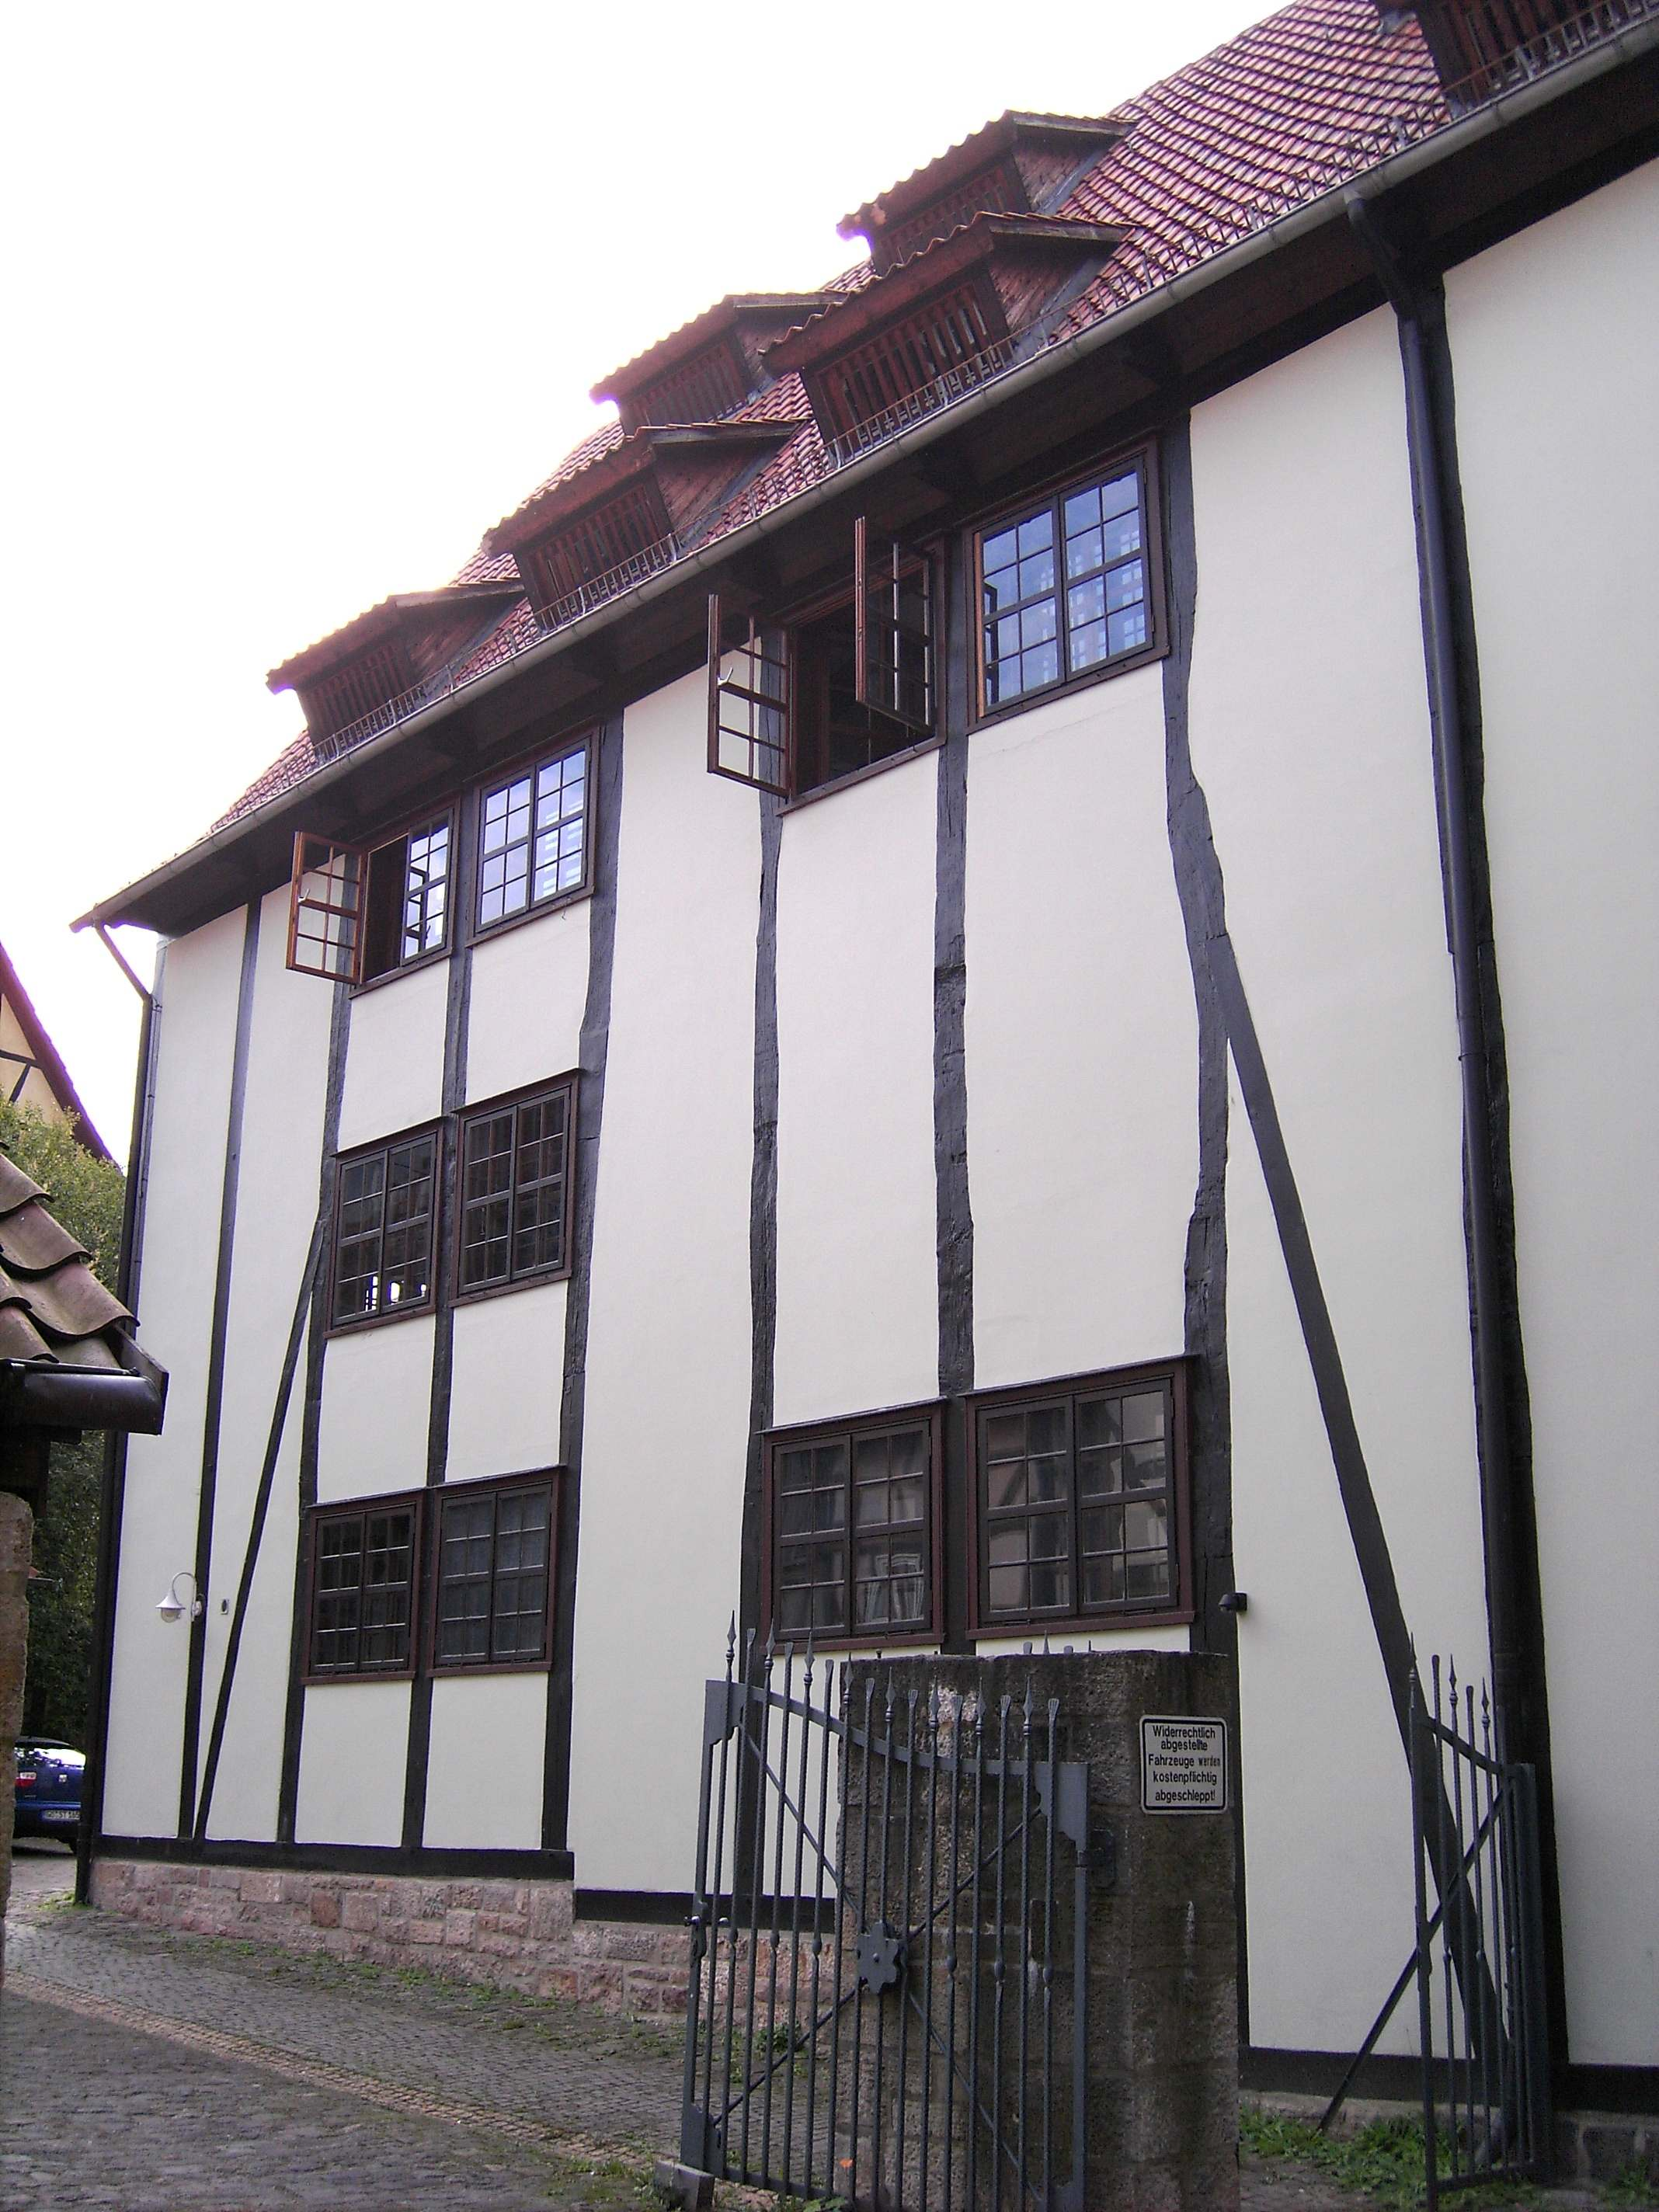 Datei:Hann. Münden-Timber.Framing-17-Sydekum-04.JPG – Wikipedia